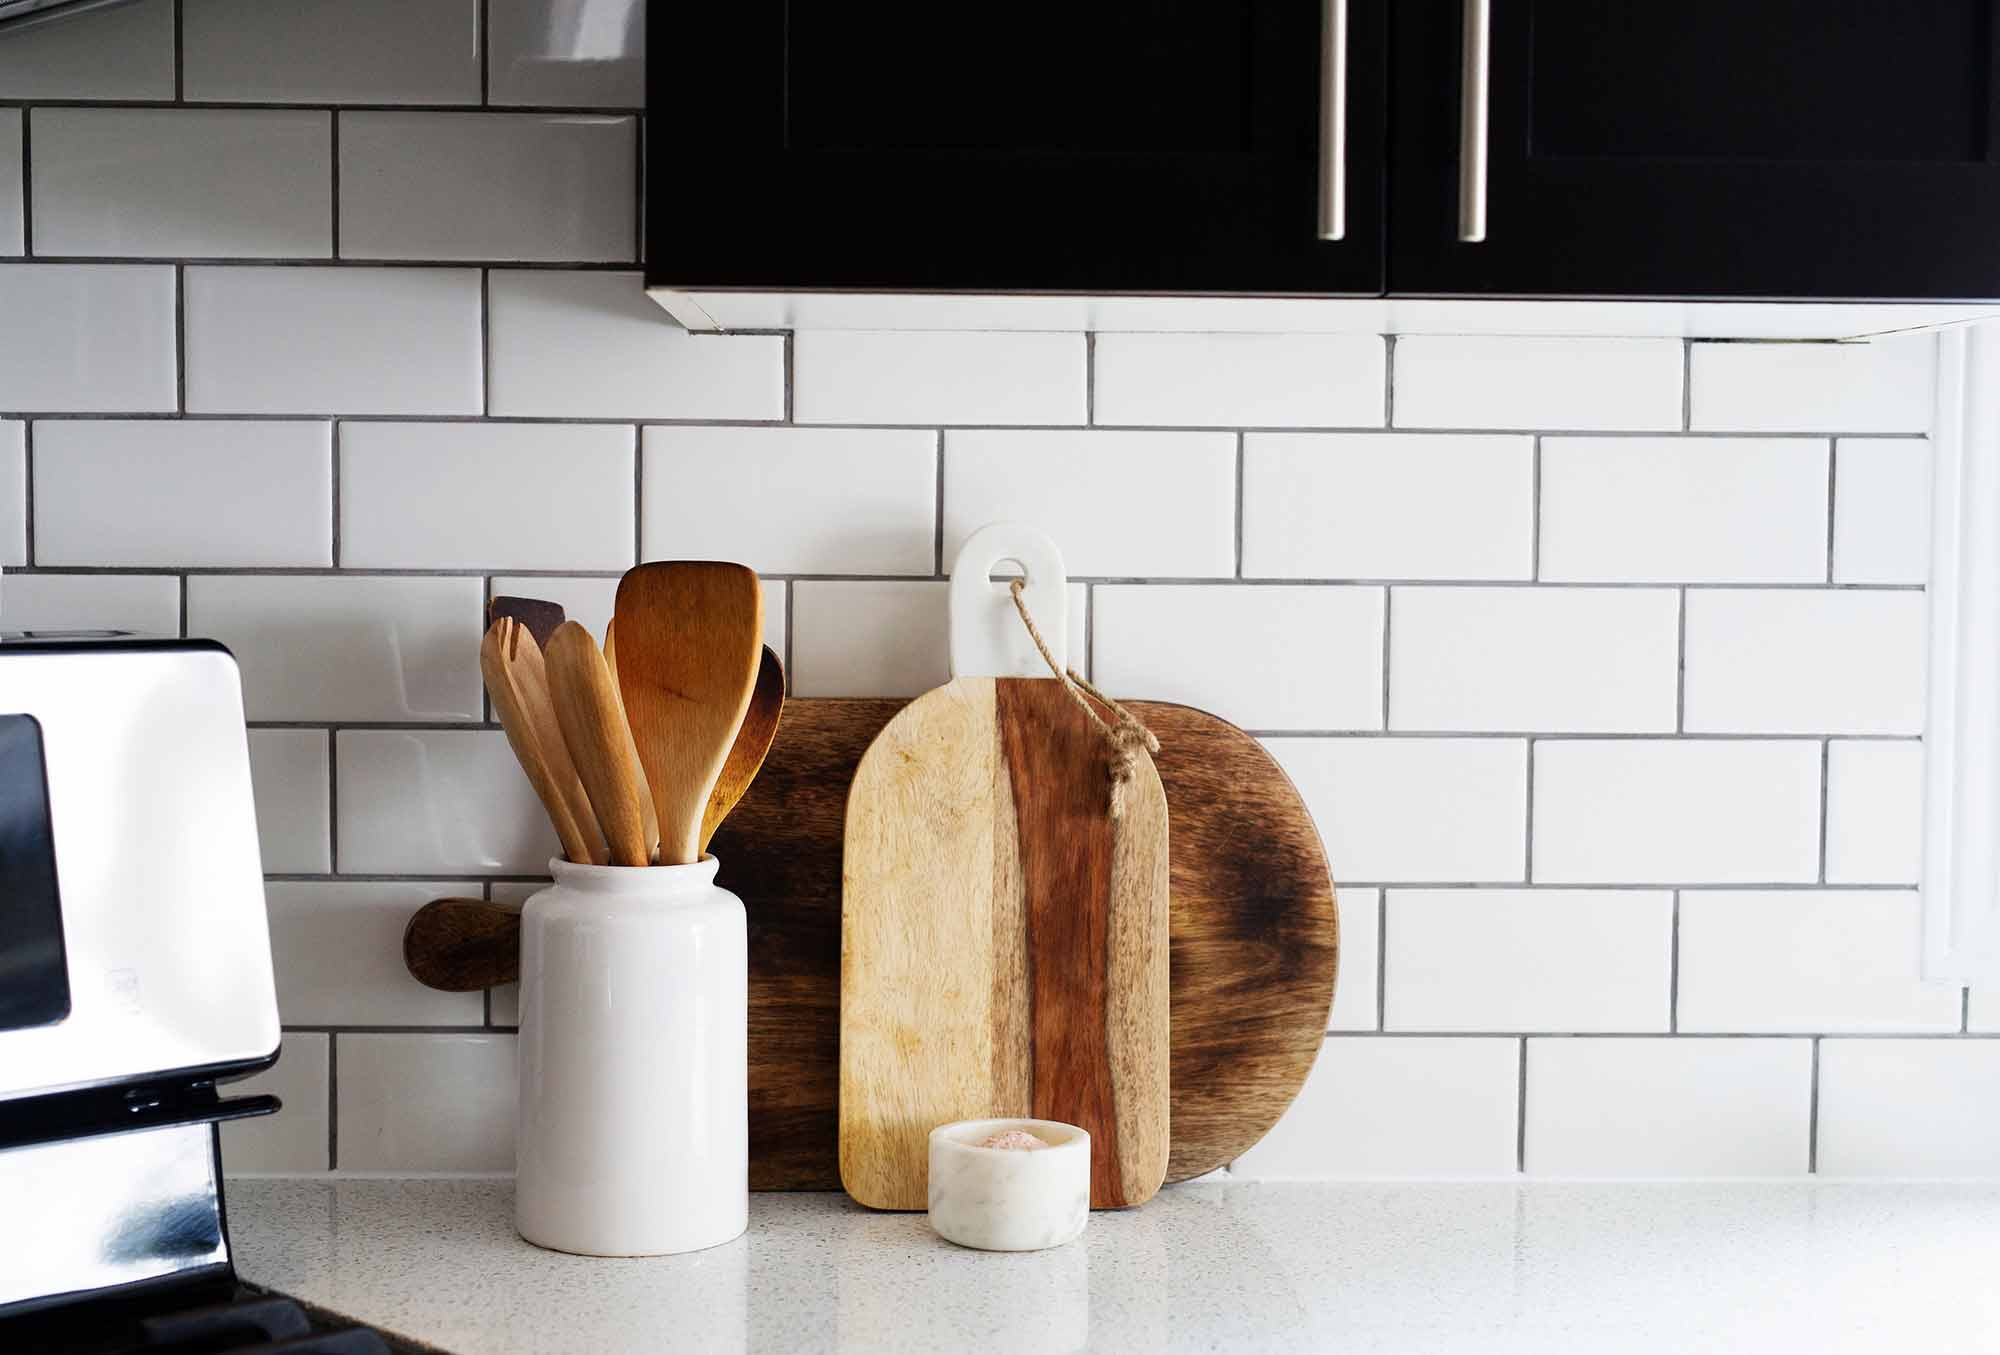 DIY Subway Tile Backsplash with Grey Grout